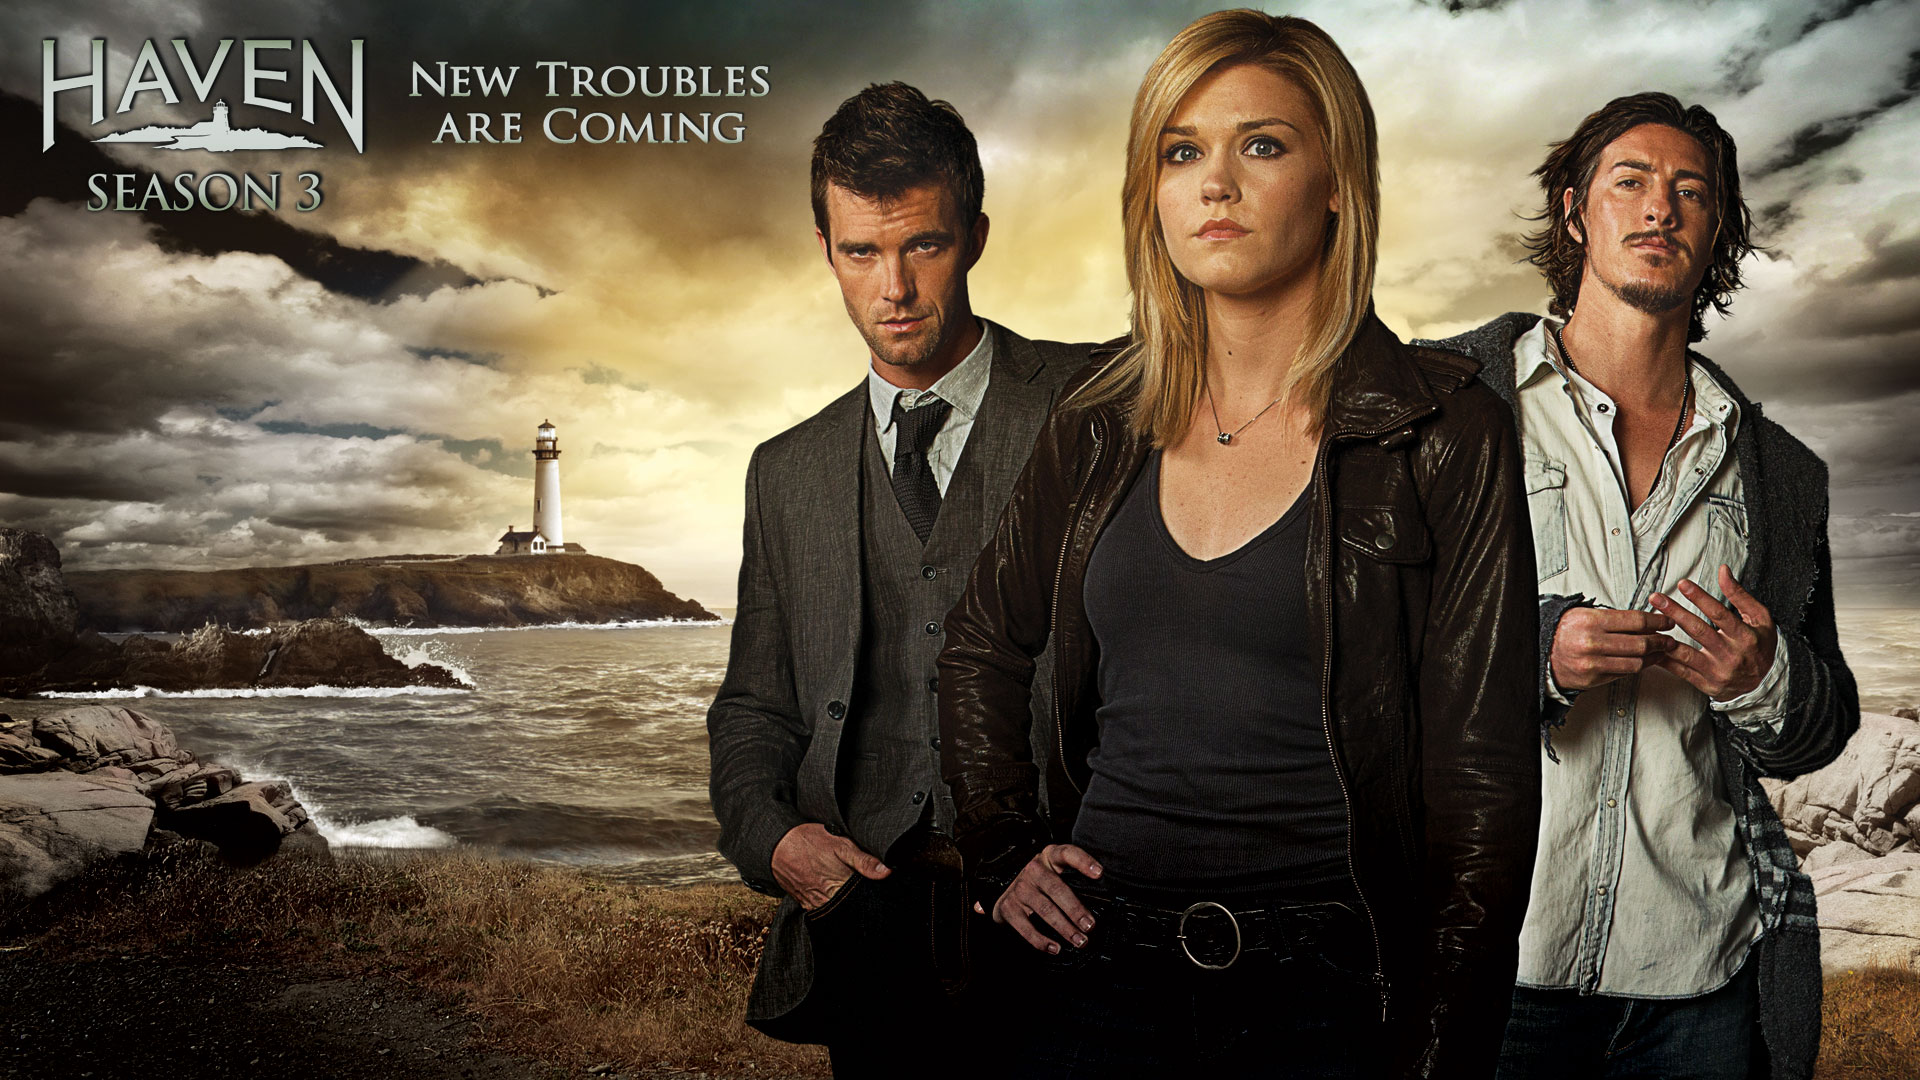 HAVEN-SEASON-3-KEY-ART-1.jpg